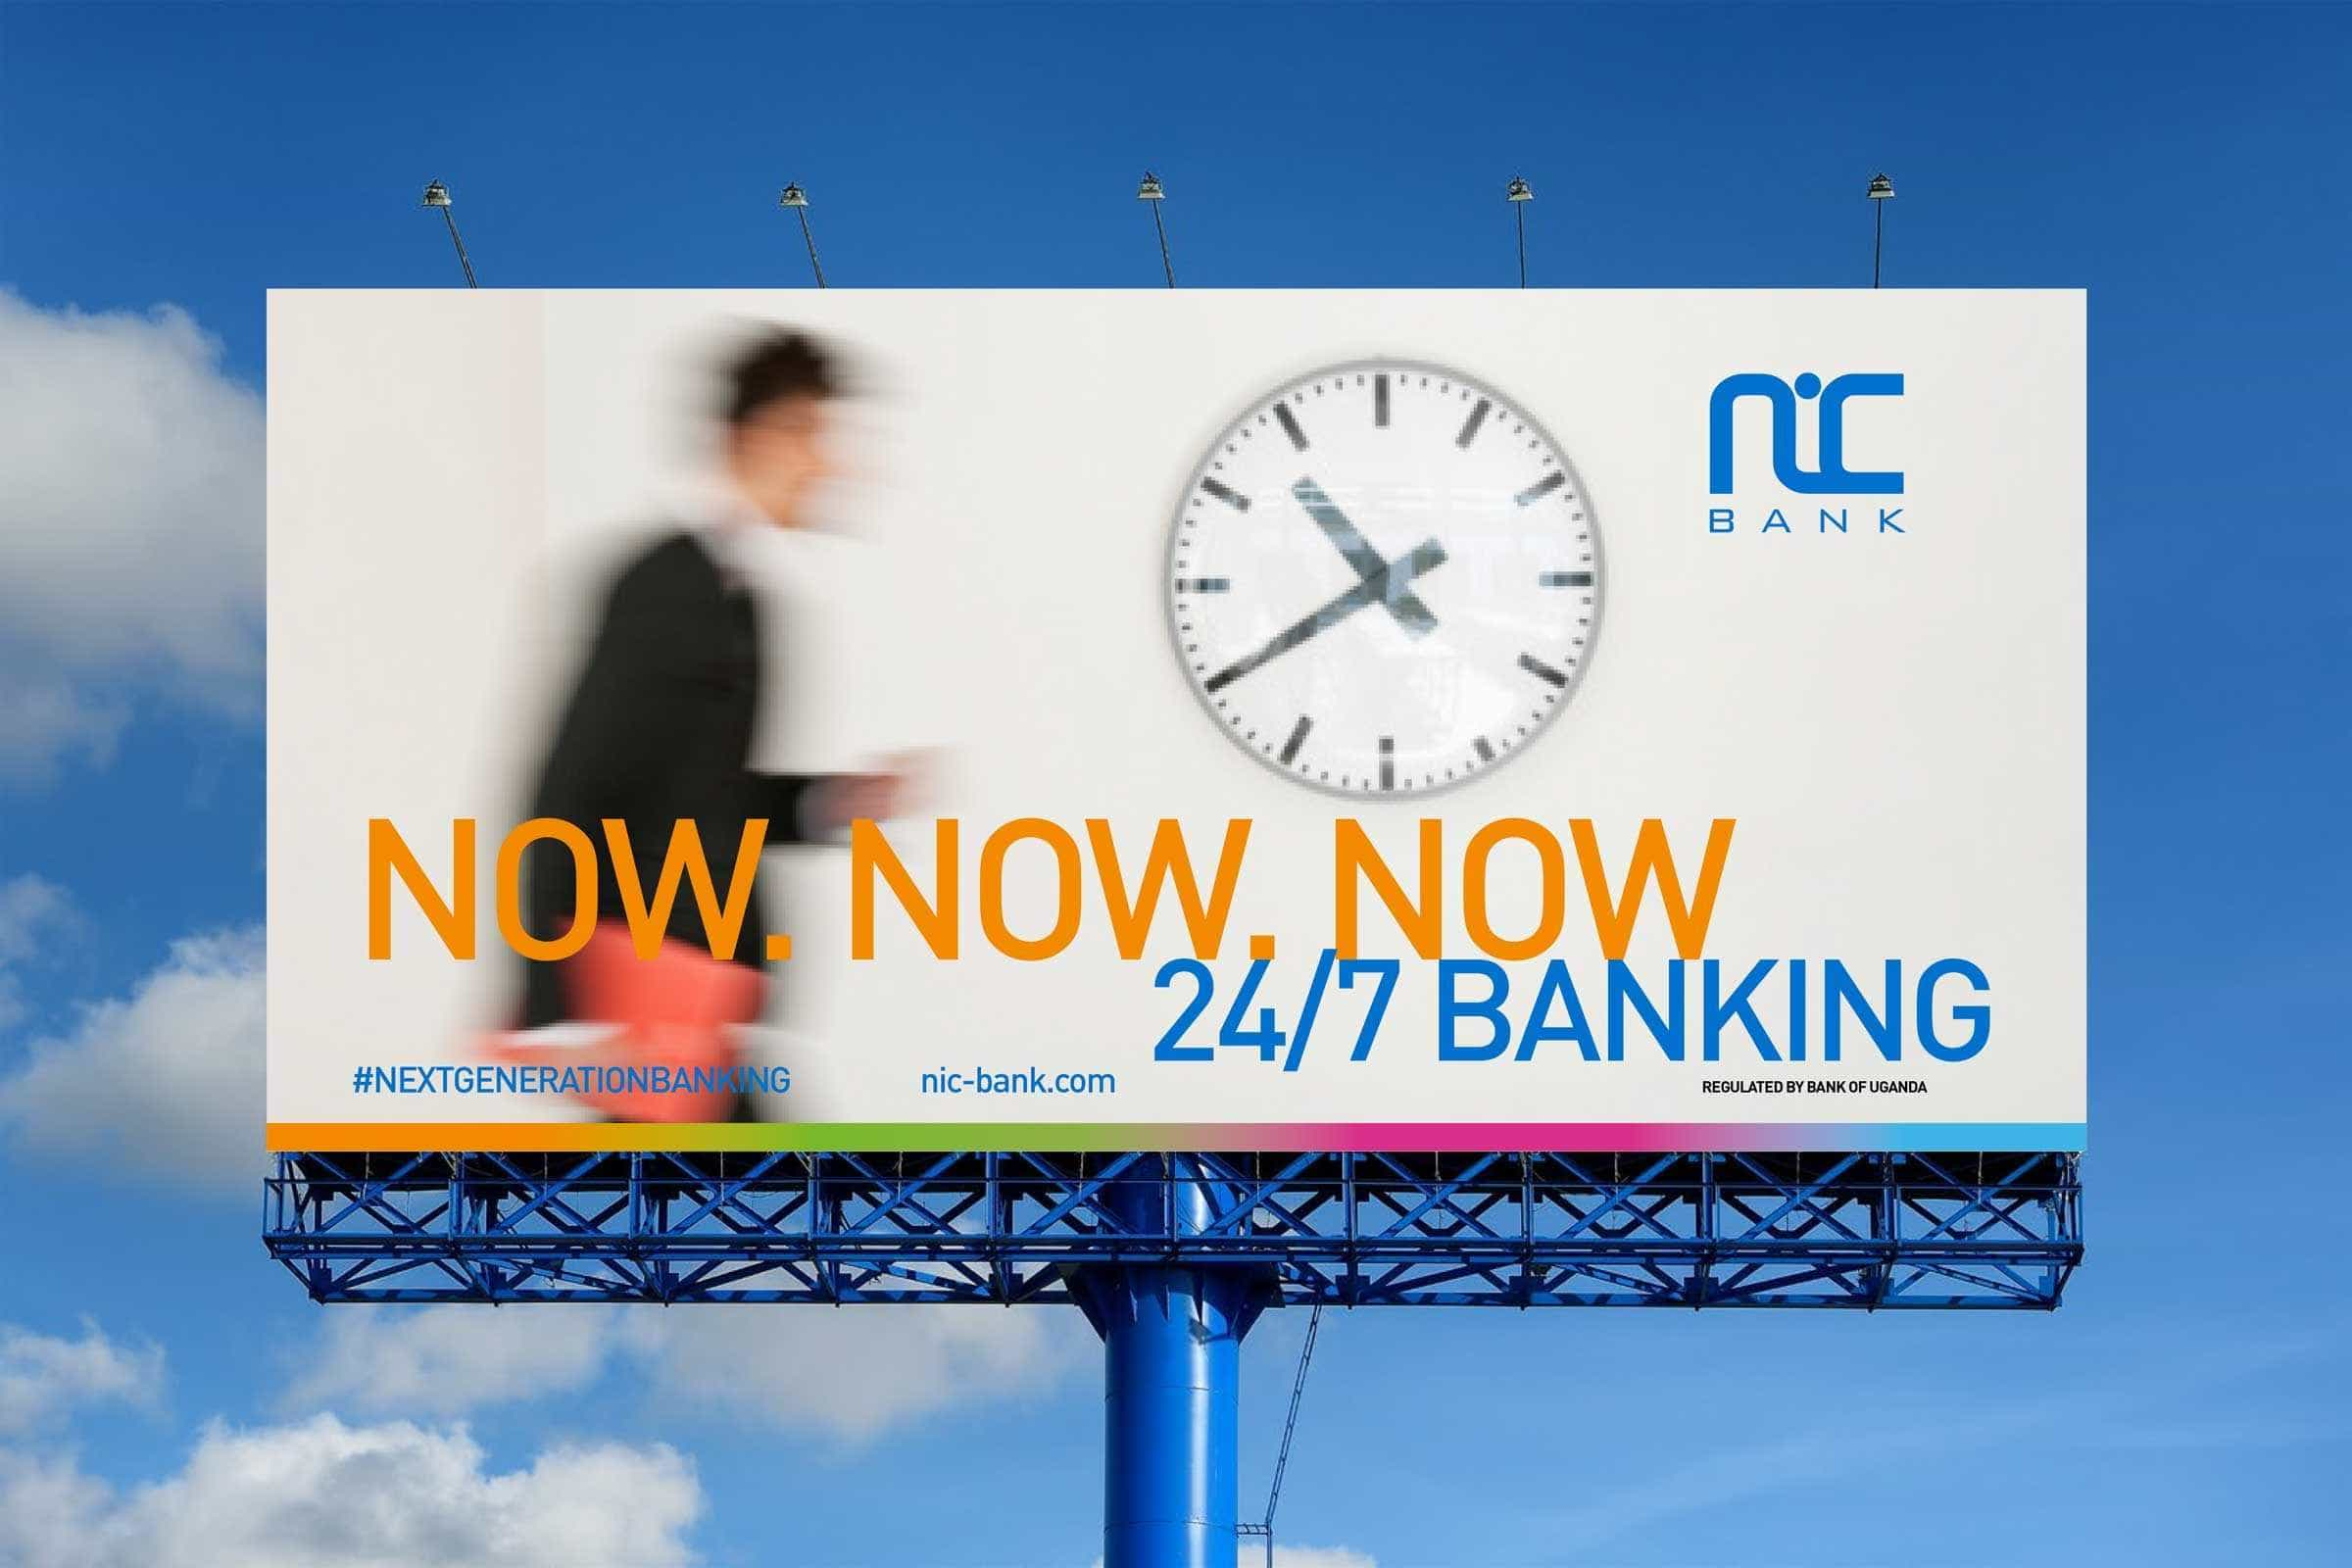 NIC Bank Outdoor Billboard Advertising 2